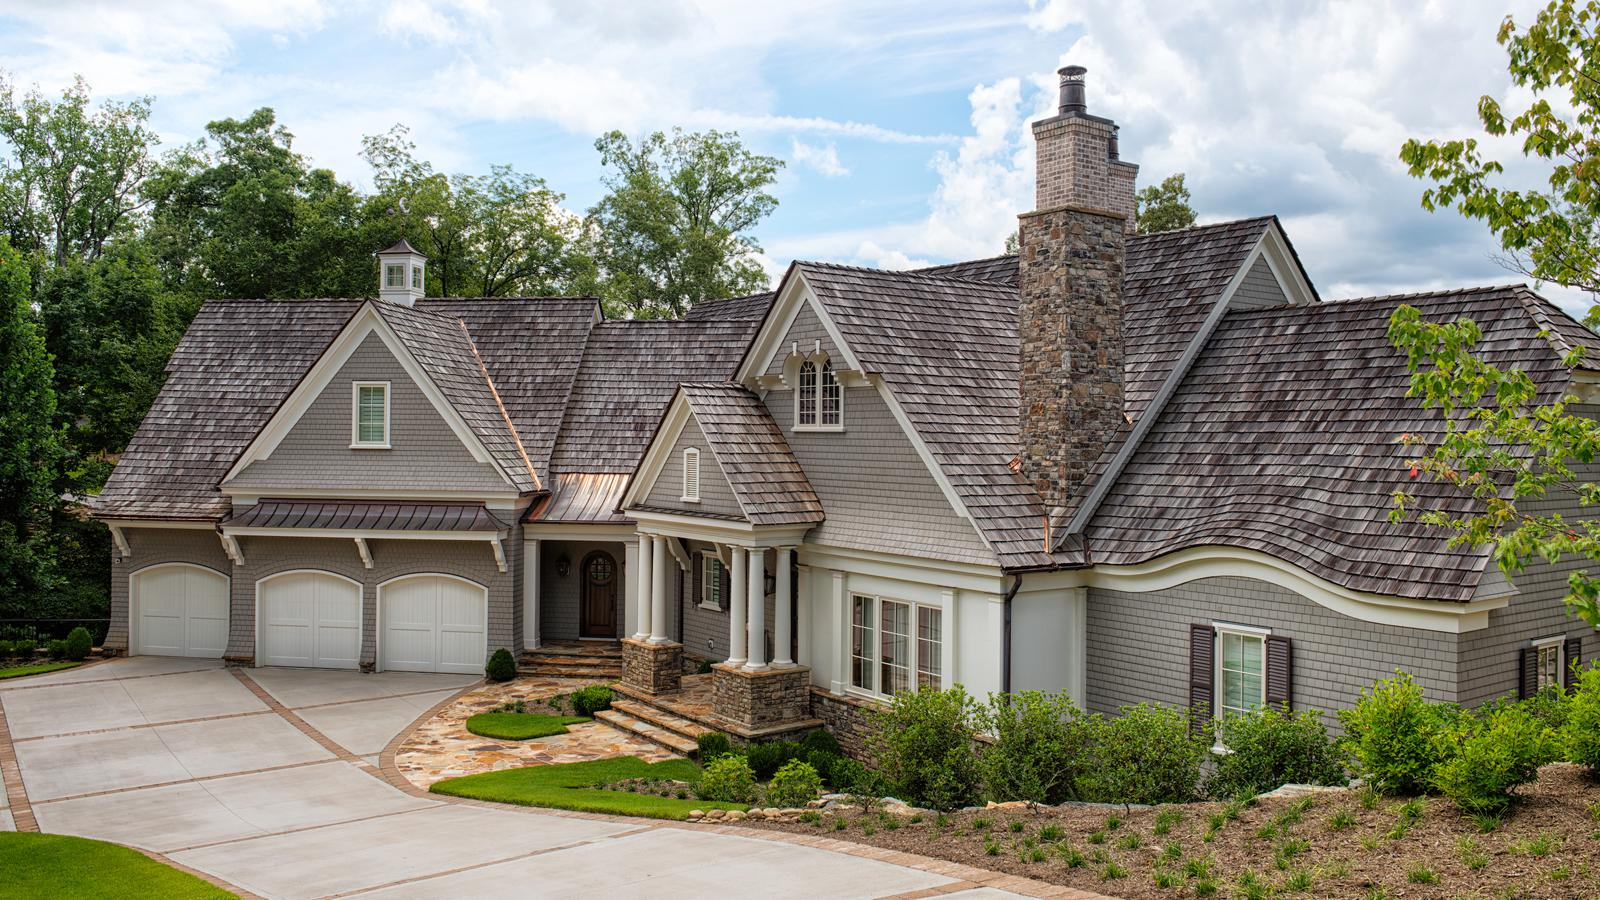 Image of: Modern Shingle Style Homes Design